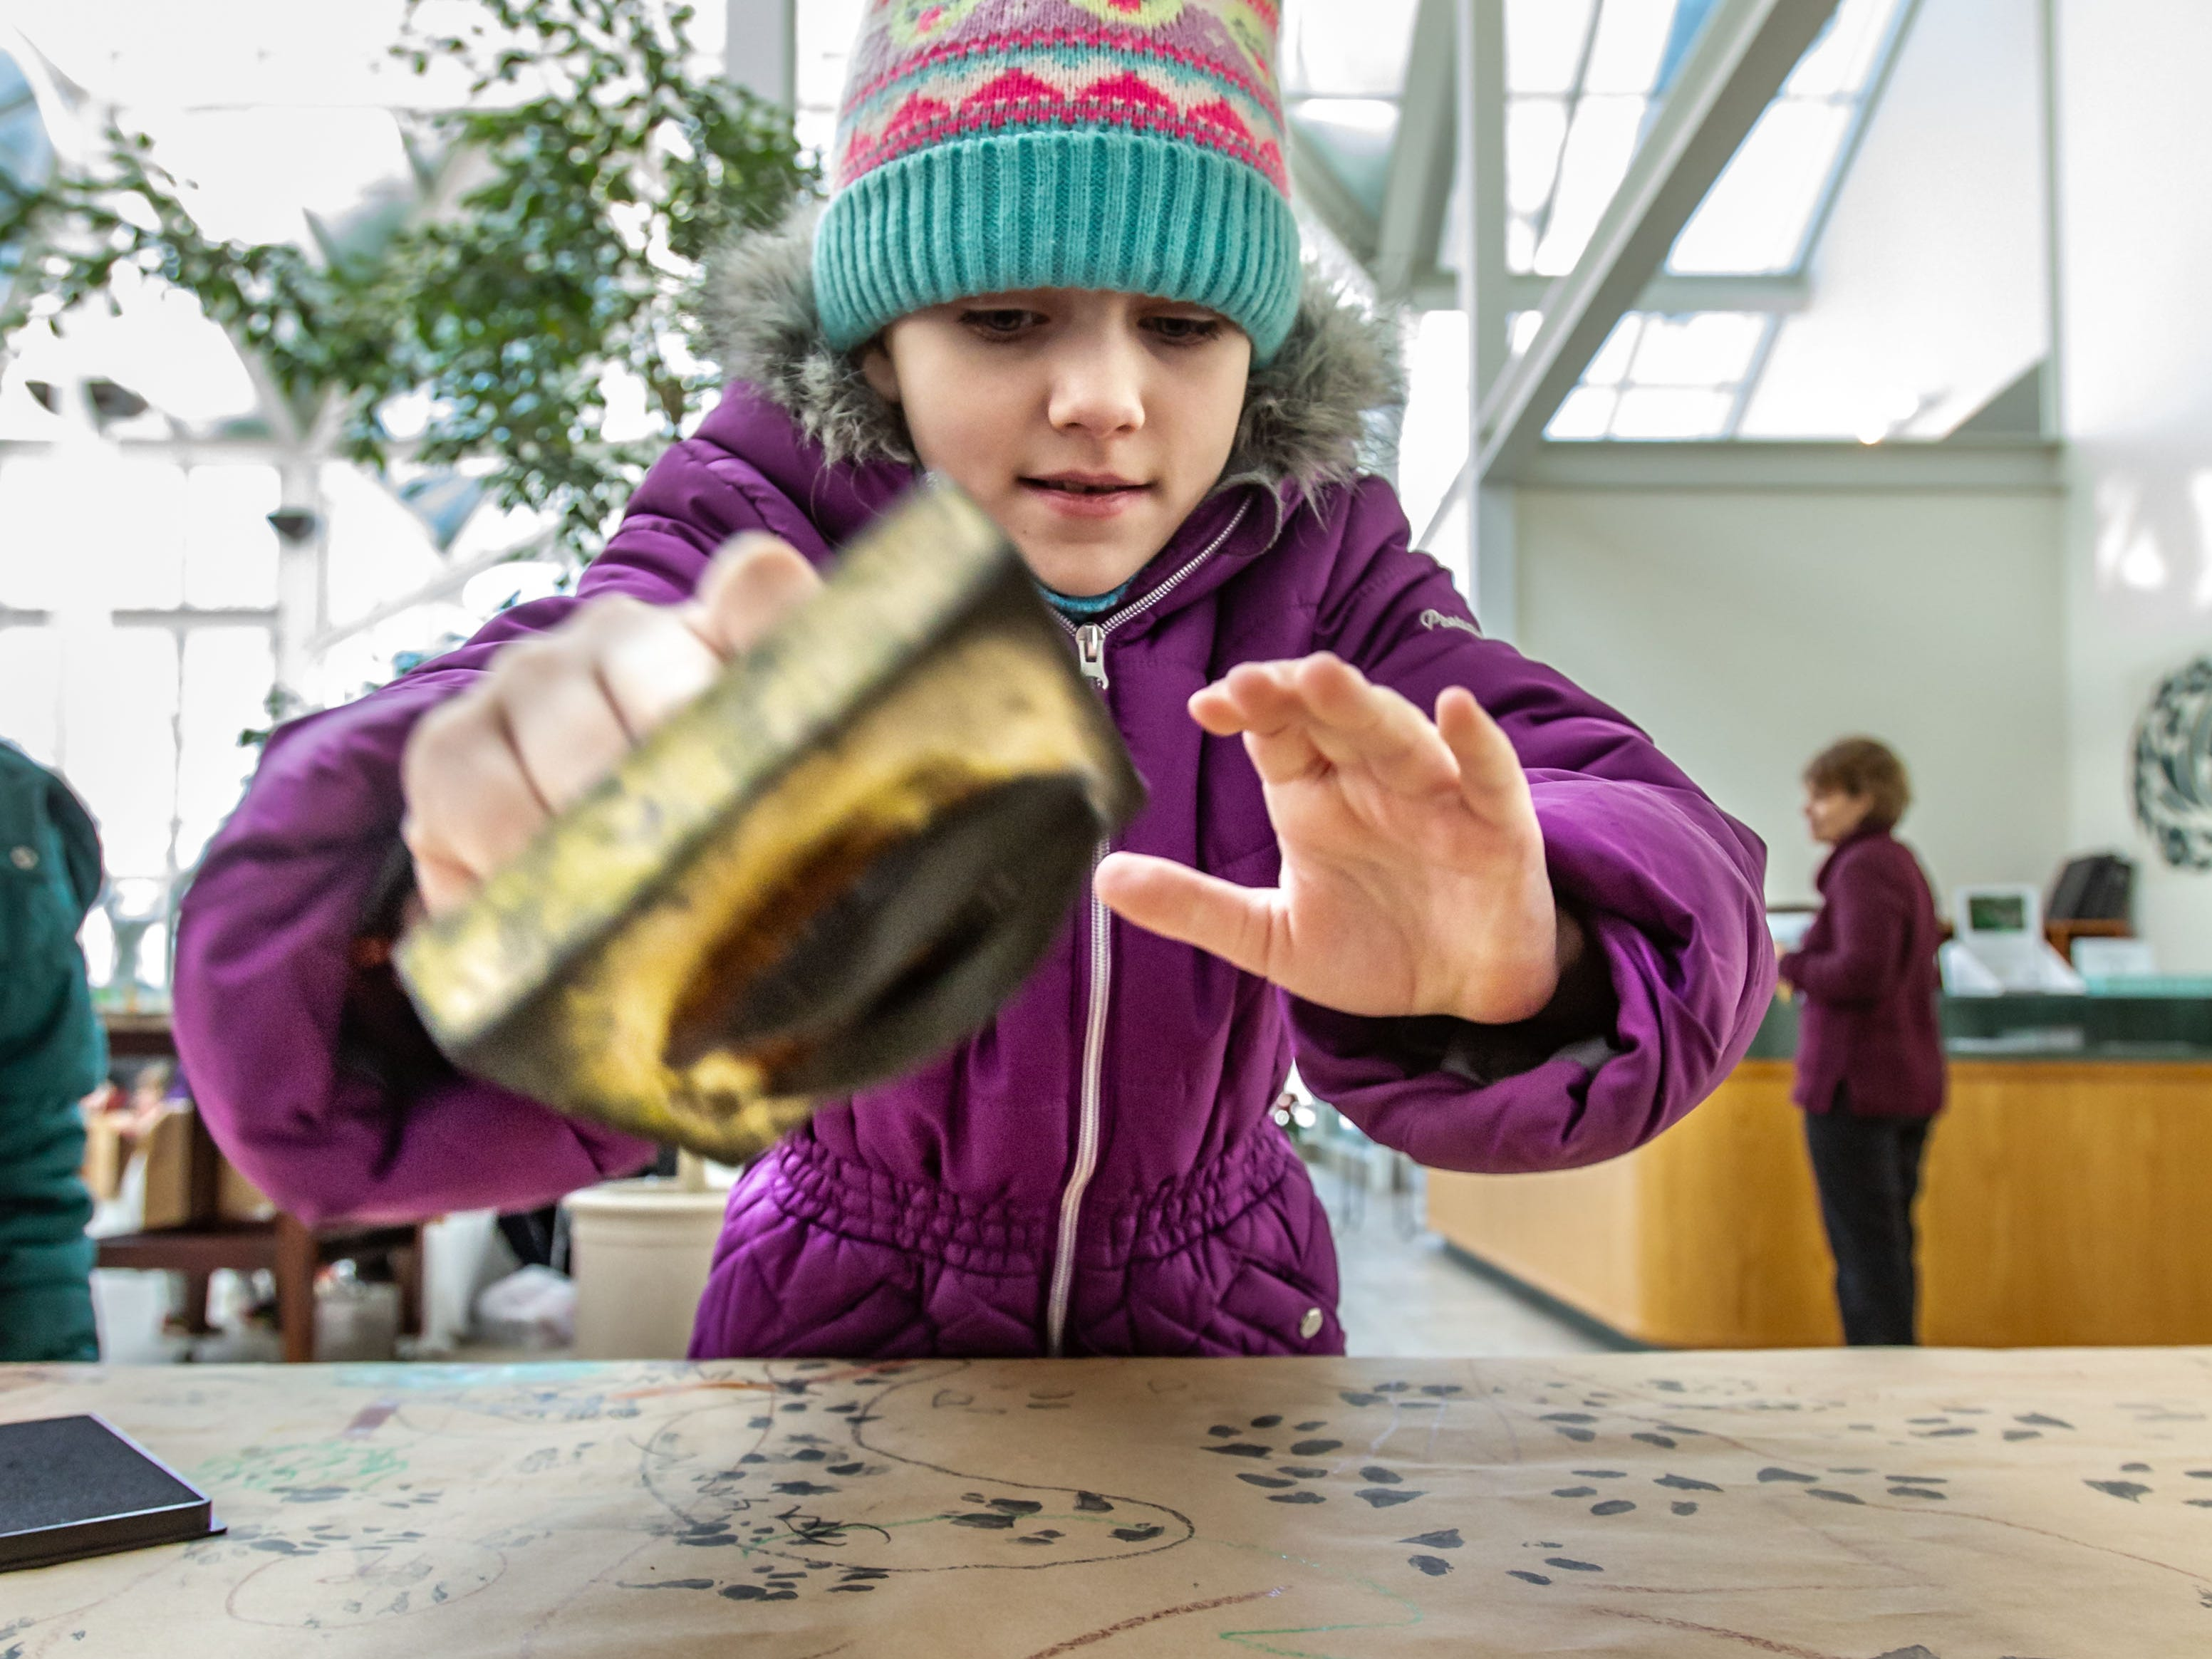 Emaline Shipley, 8, of Milwaukee, creates white-tailed deer tracks with an ink stamp during Winterfest at Boerner Botanical Gardens in Hales Corners on Sunday, Jan. 20, 2019. The annual event, hosted by the Friends of Boerner Botanical Gardens, features children's crafts, informational displays, expert-led nature walks and more.